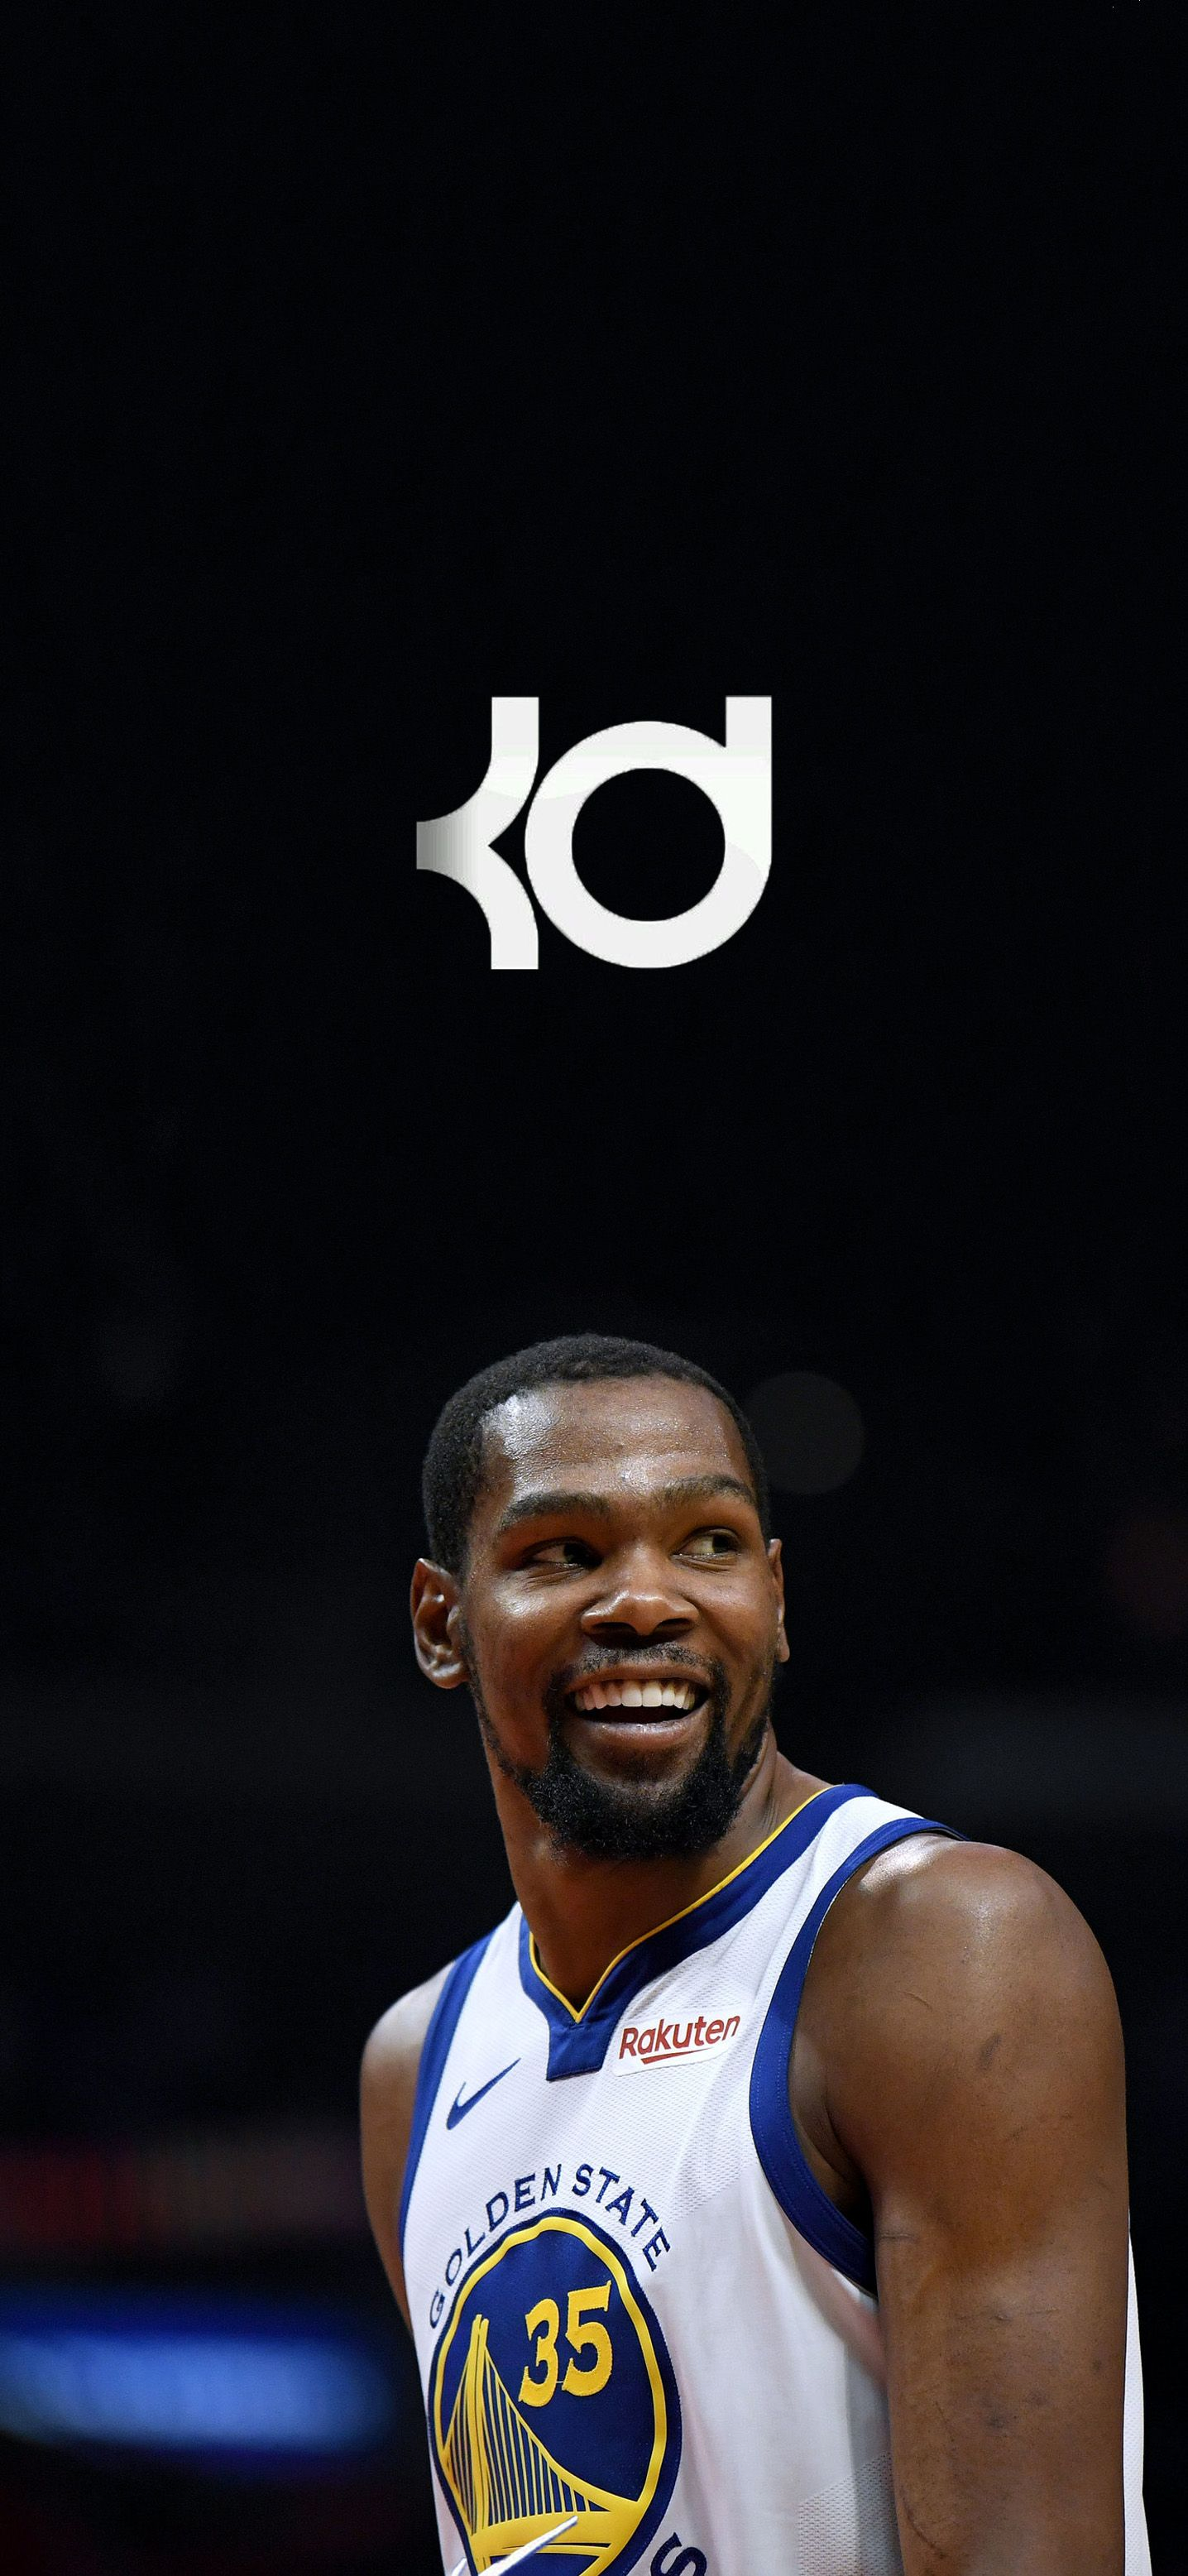 Kevin Durant Wallpaper In 2020 Kevin Durant Wallpapers Kevin Durant Kobe Bryant Wallpaper